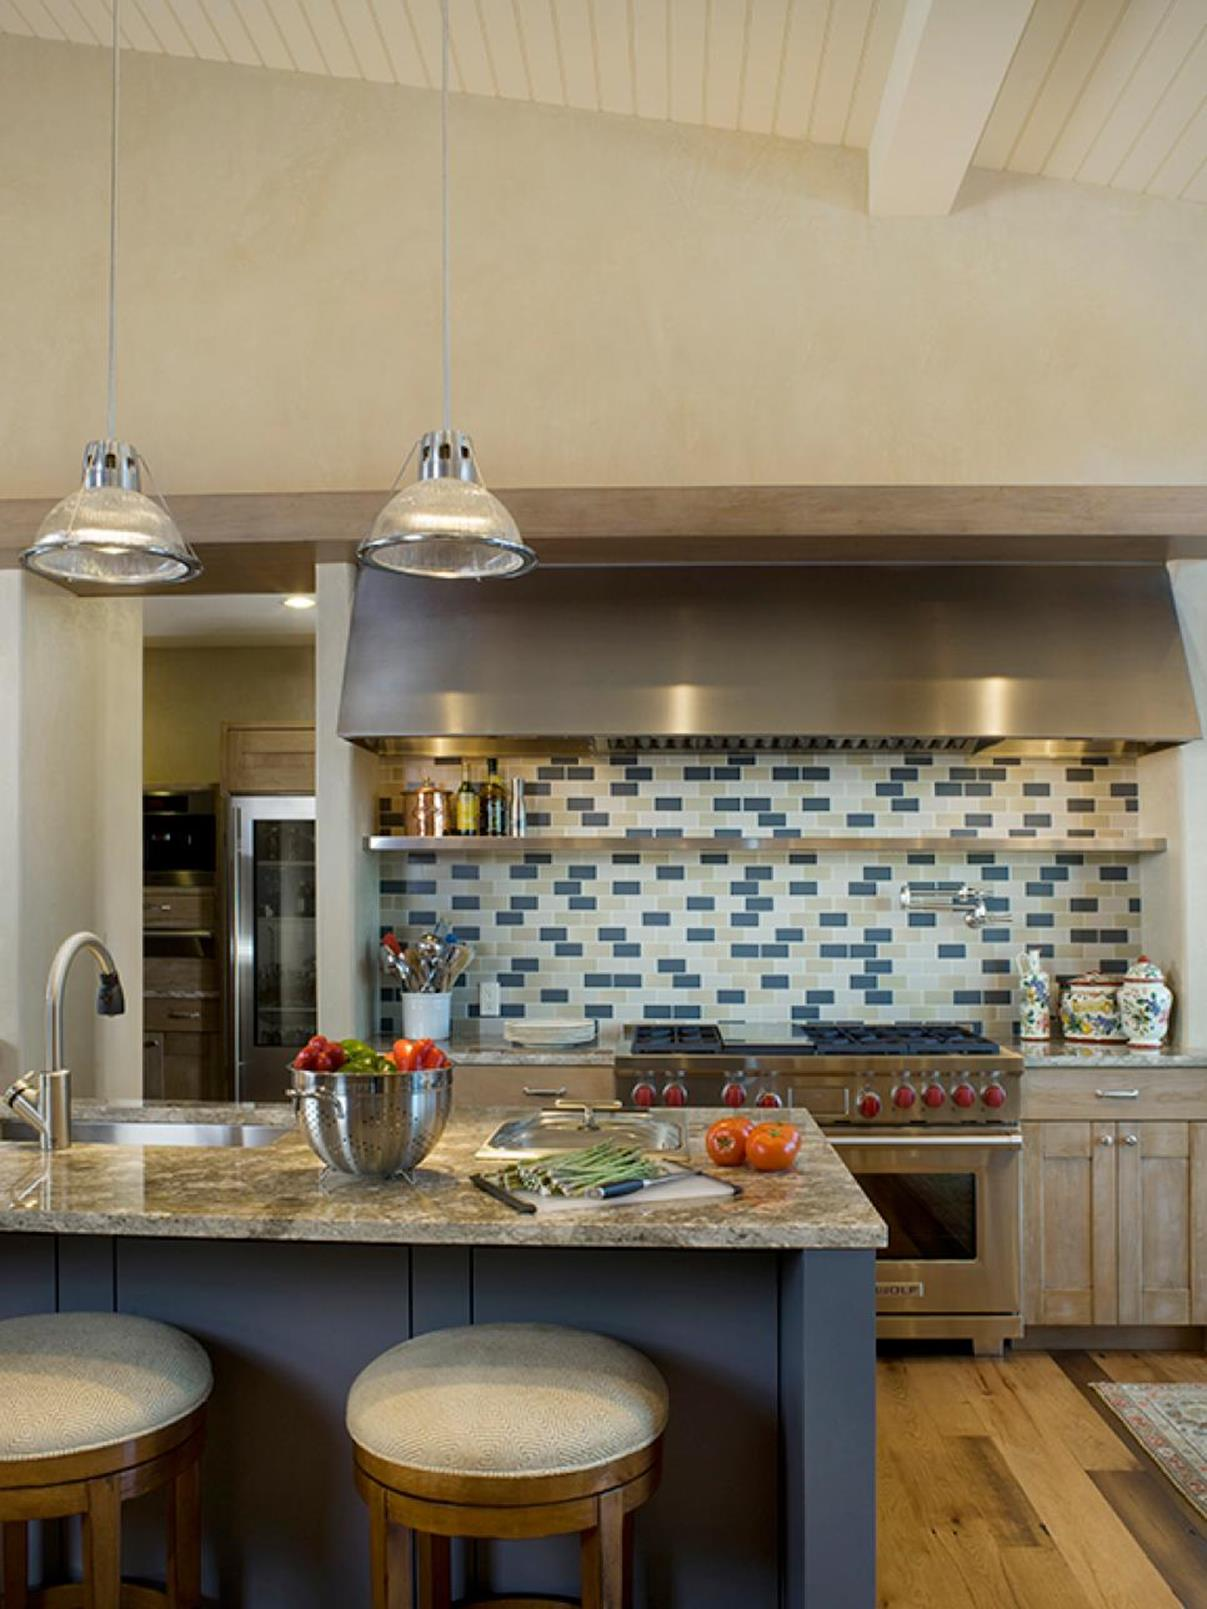 Projects to Make Kitchen More Neat and Beautiful 16